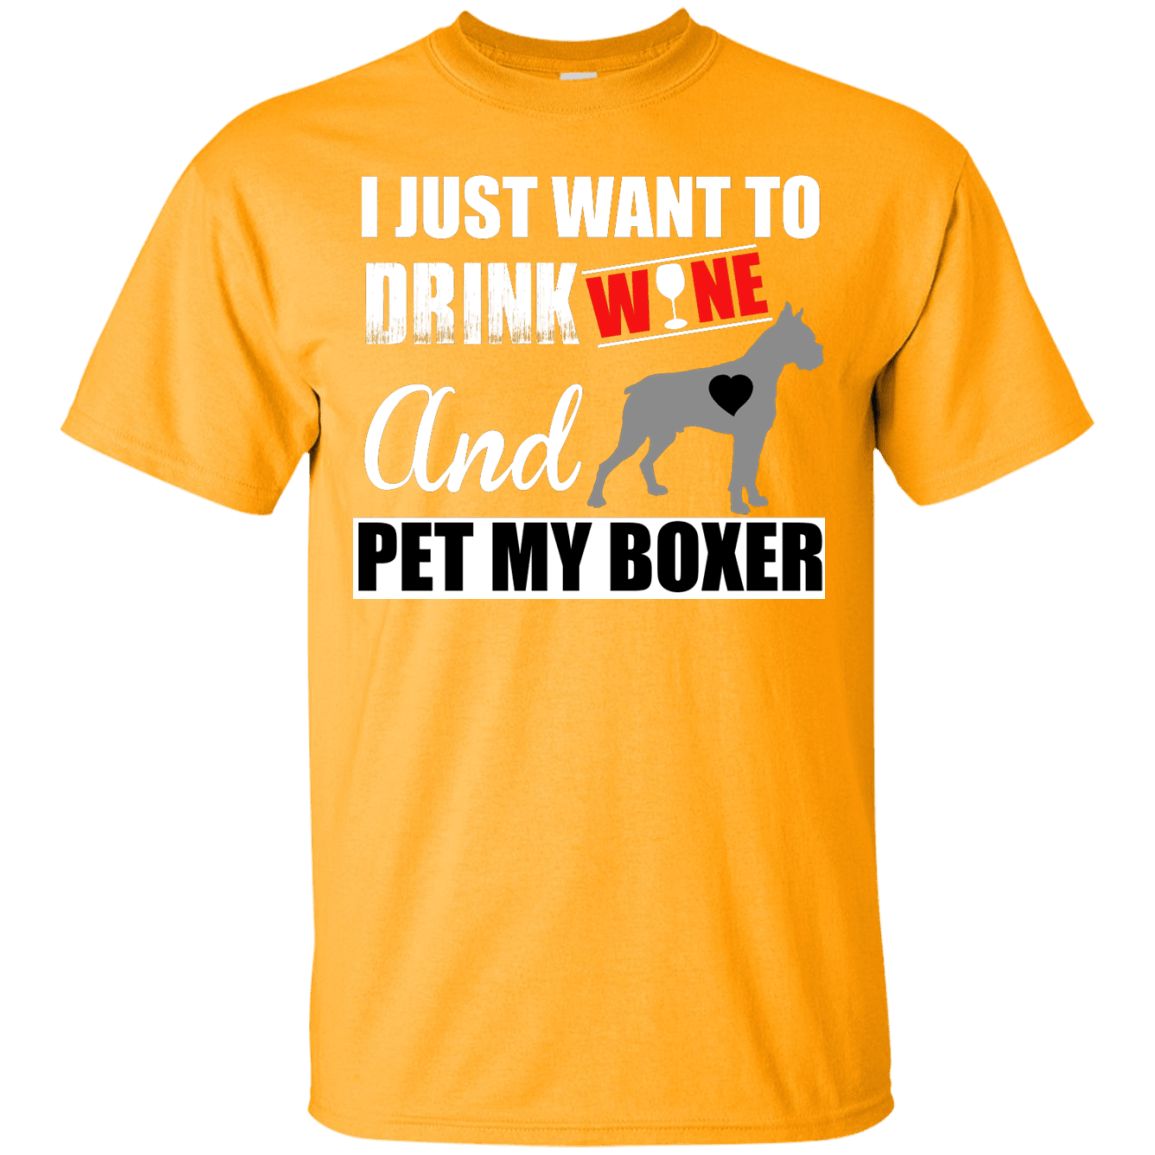 Pet My Boxer themed T-Shirts and Hoodies for Men and Women